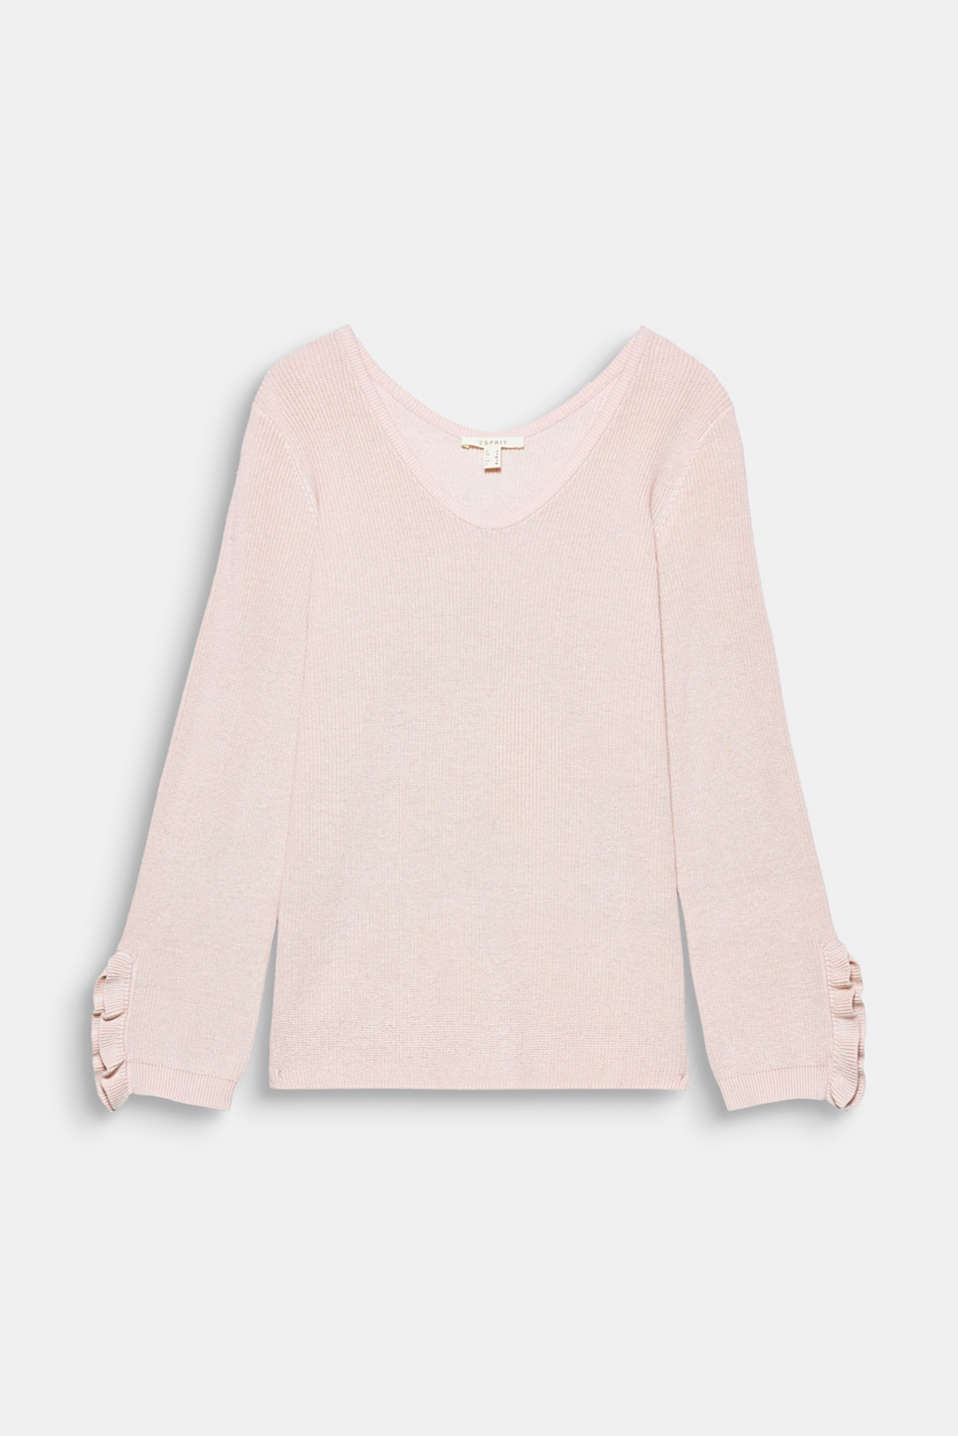 Frills on the sleeves and the rounded V-neckline give this cotton jumper its feminine edge!